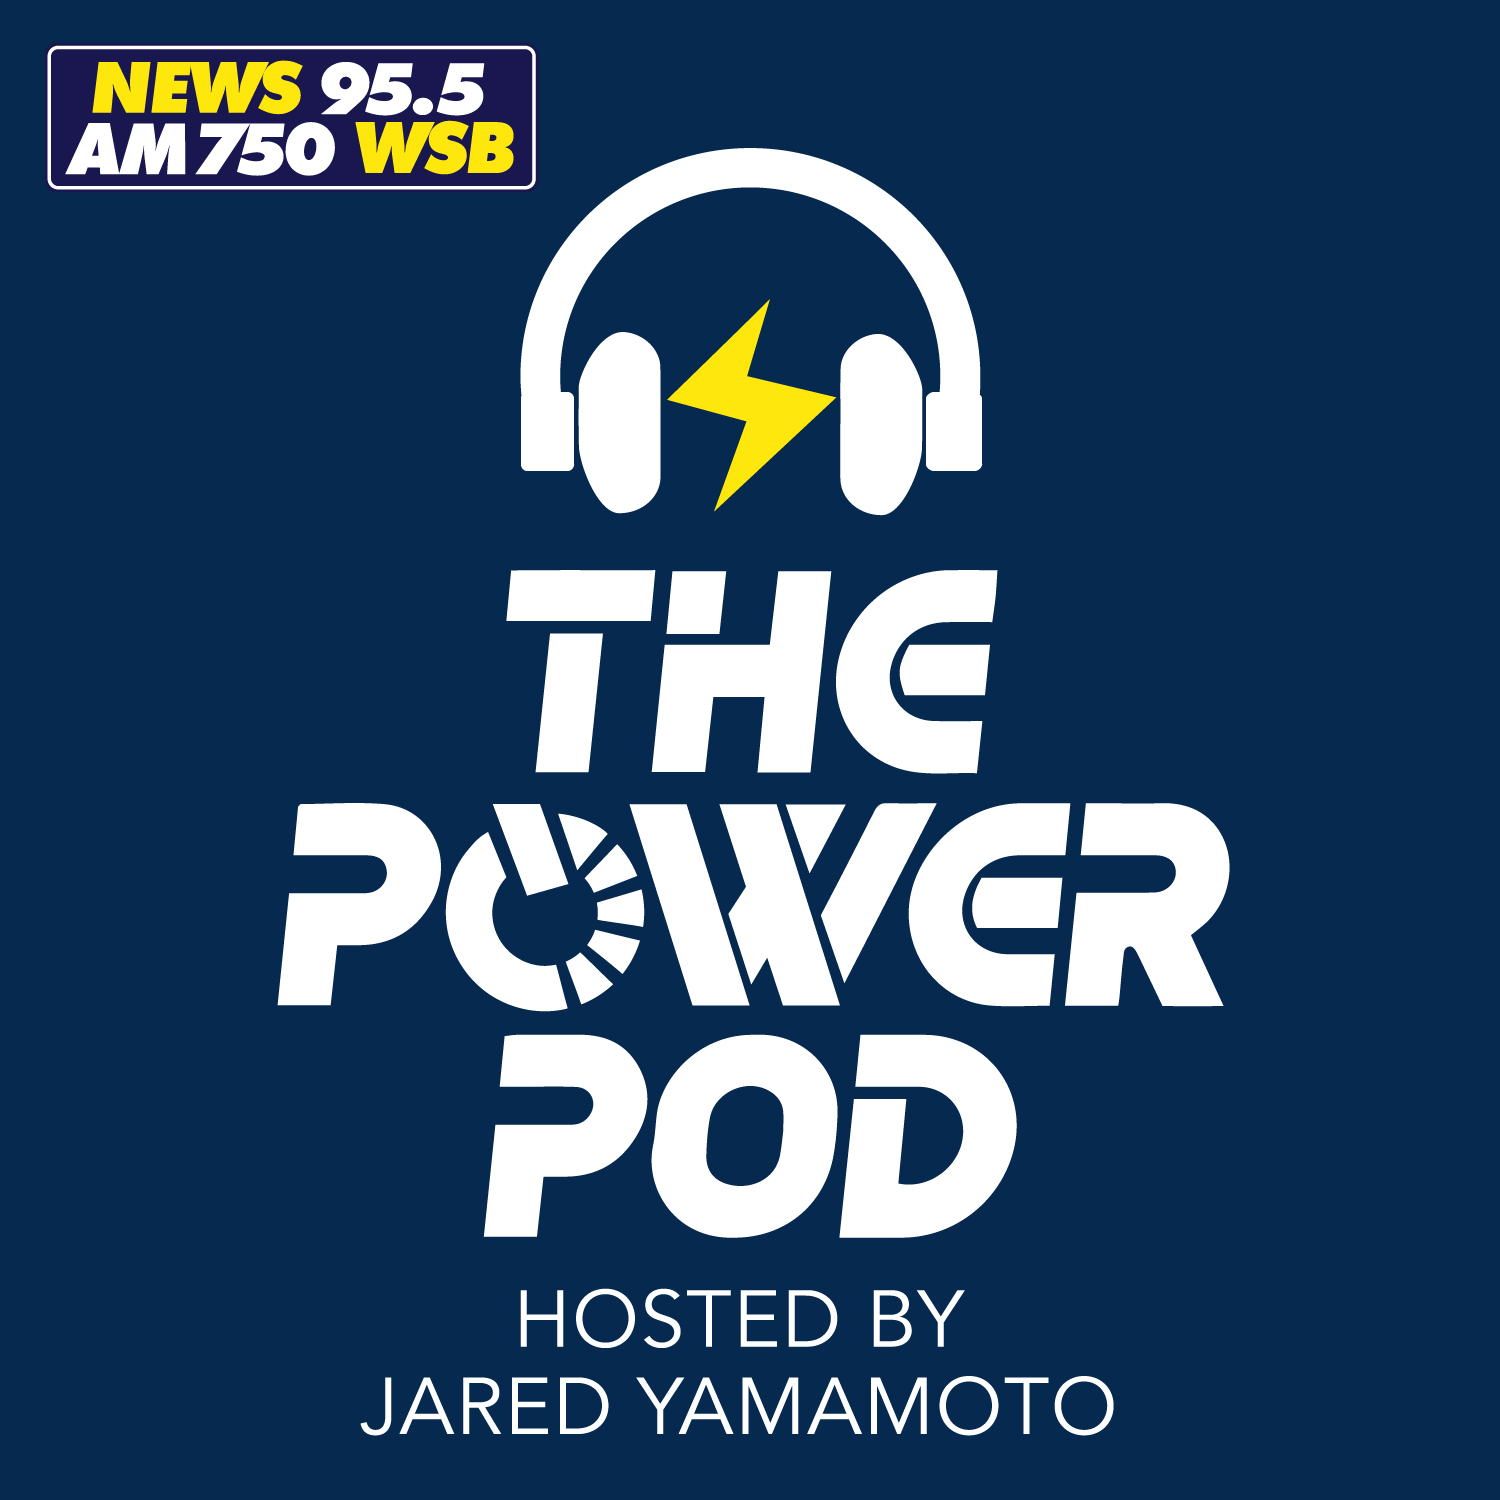 The_Power_Pod_Podcast_Jared_Yamamoto.jpeg